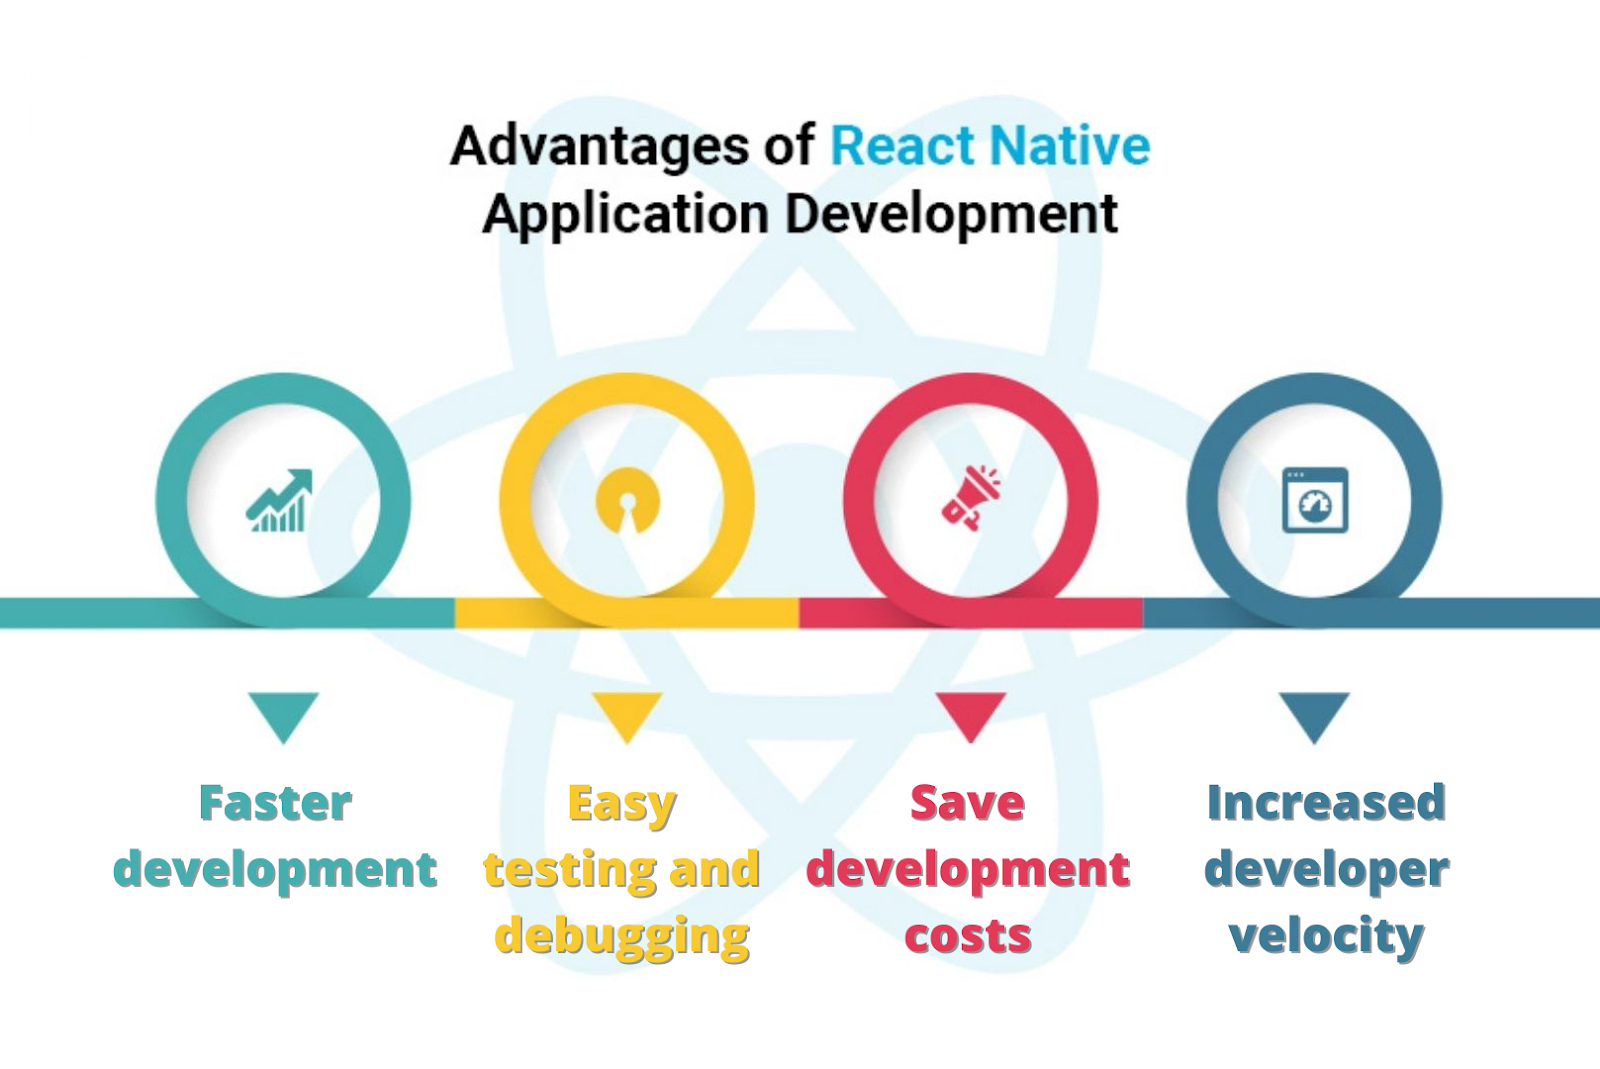 Advantages of React Native Application Development